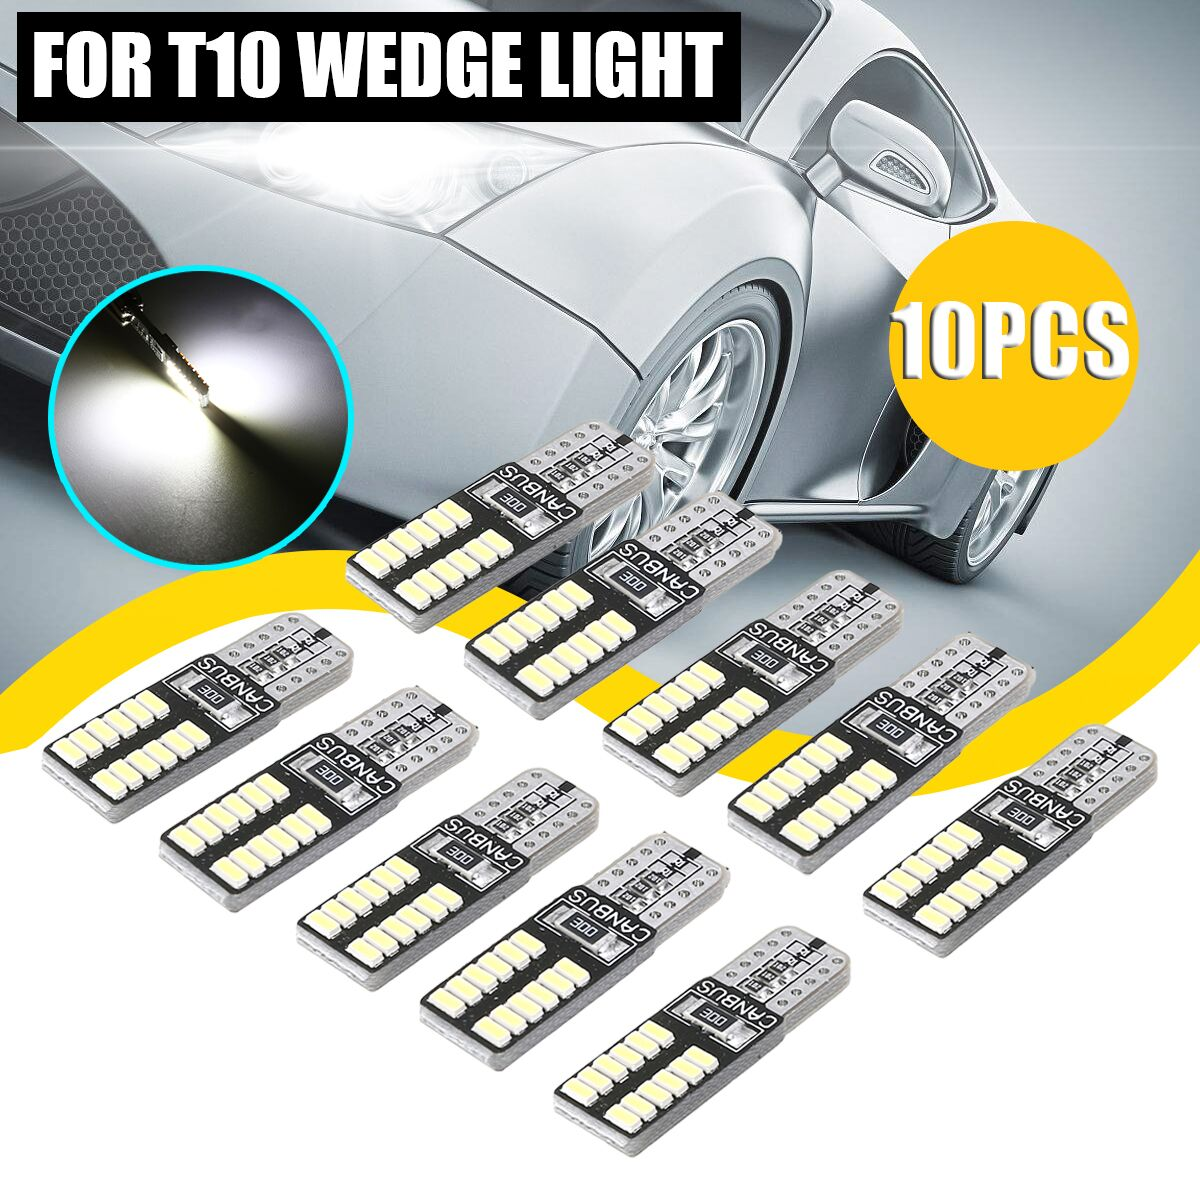 10pcs T10 Canbus <font><b>Led</b></font> 24led 3014smd Car Smd Signal Light <font><b>w5w</b></font> <font><b>led</b></font> 194 t10 24smd Canbus <font><b>led</b></font> <font><b>Bulb</b></font> No Error image